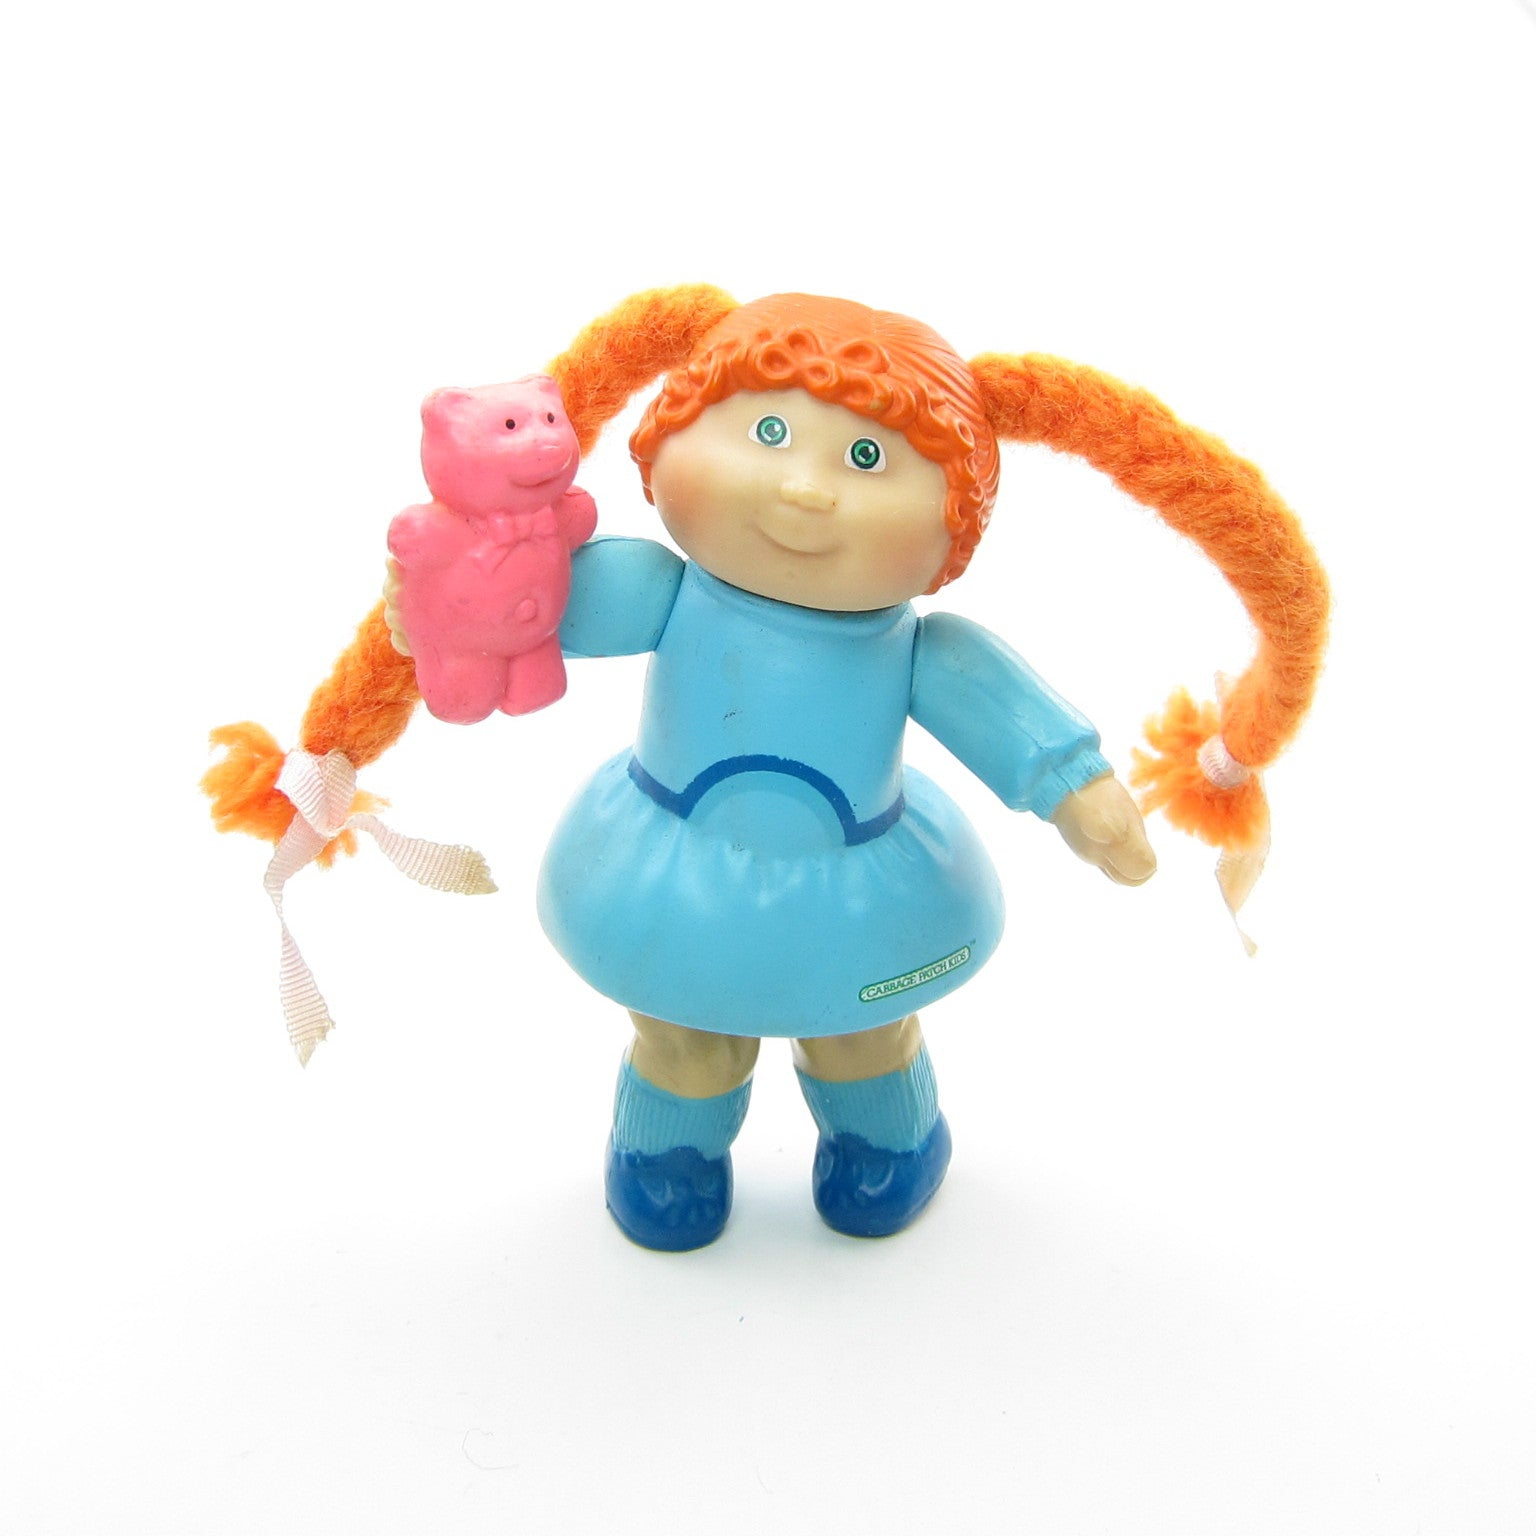 Cabbage Patch Doll in Blue Dress Vintage Pin